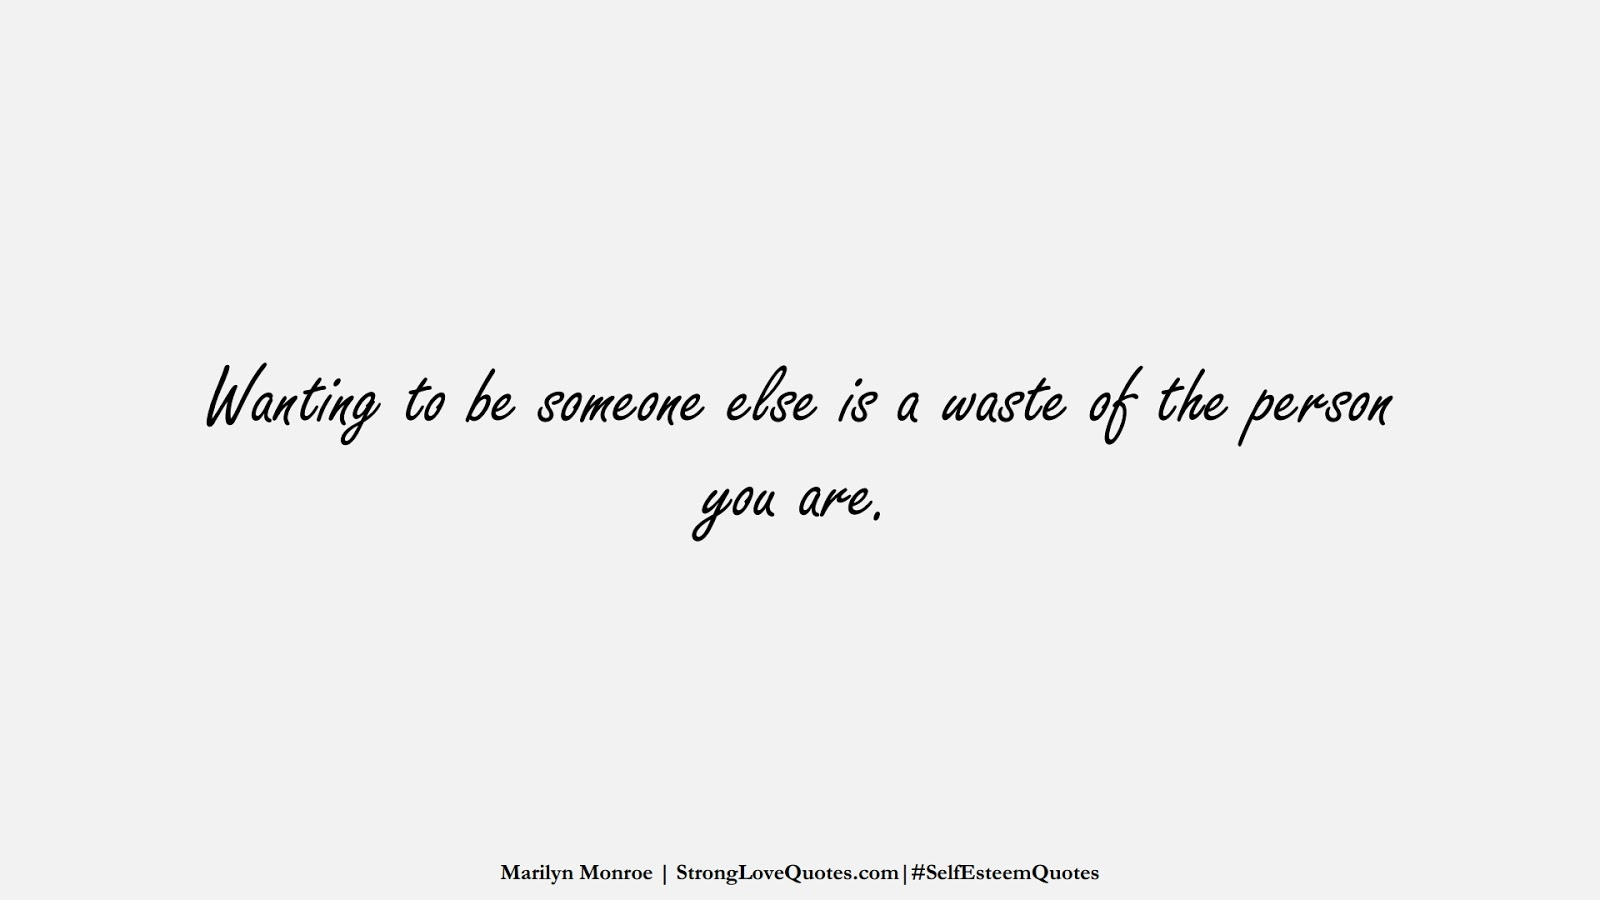 Wanting to be someone else is a waste of the person you are. (Marilyn Monroe);  #SelfEsteemQuotes